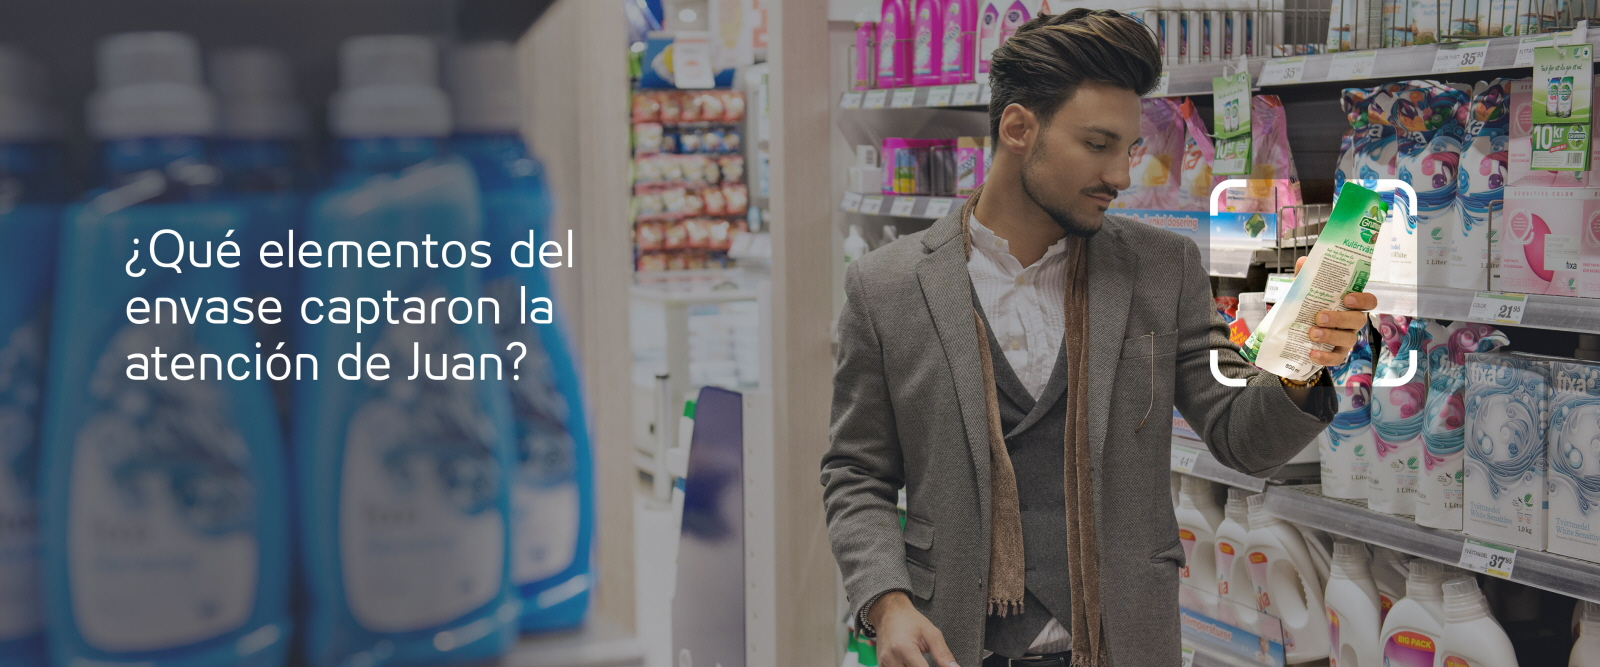 Consumer Journey Page Image Banner 2 - Spanish